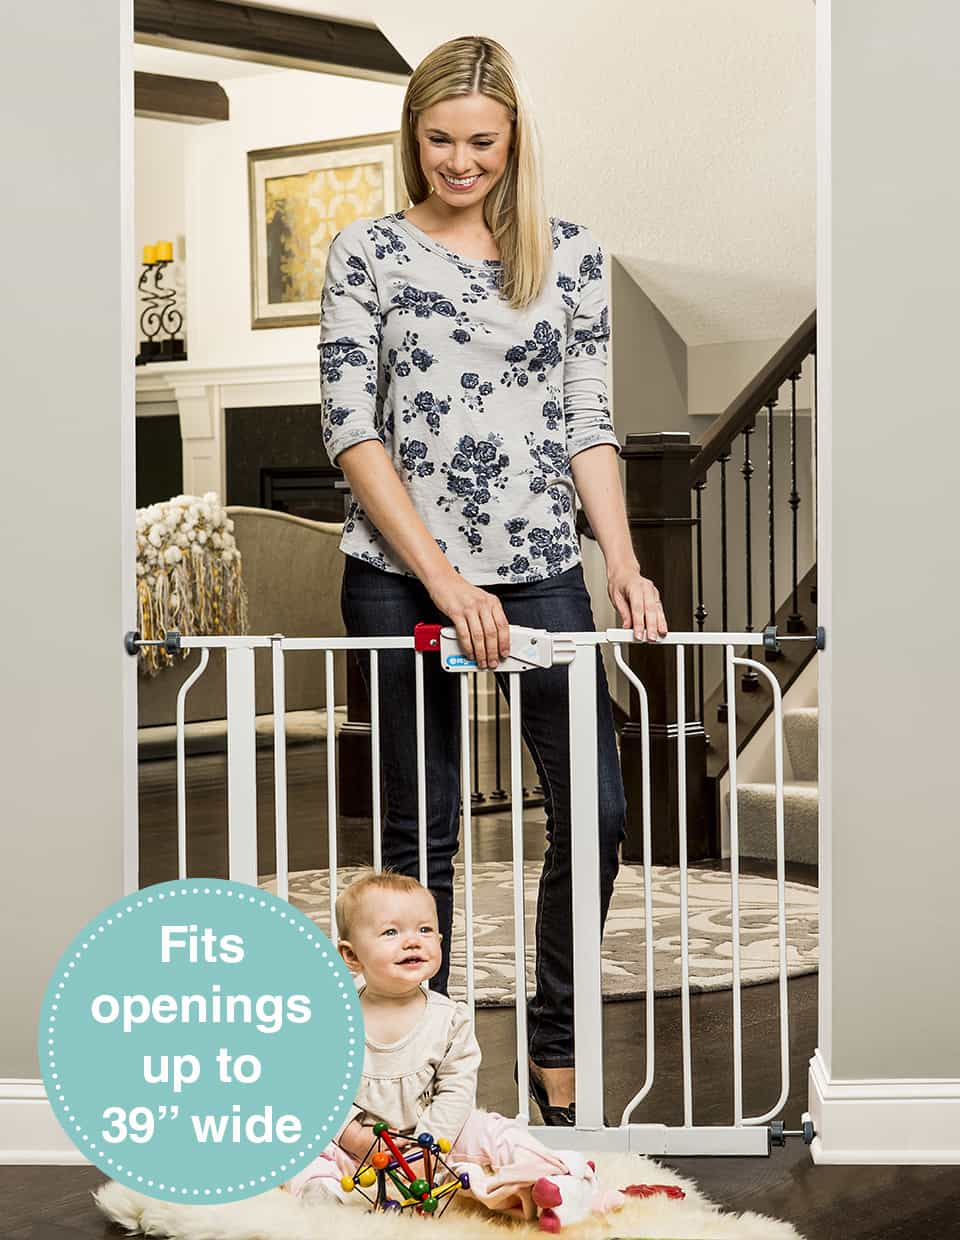 You Can Use This Narrow Stair Gate Any Place That Allows You To Pressure  Mount It. It Does Not Require Any Drilling Or A Place To Fasten ...